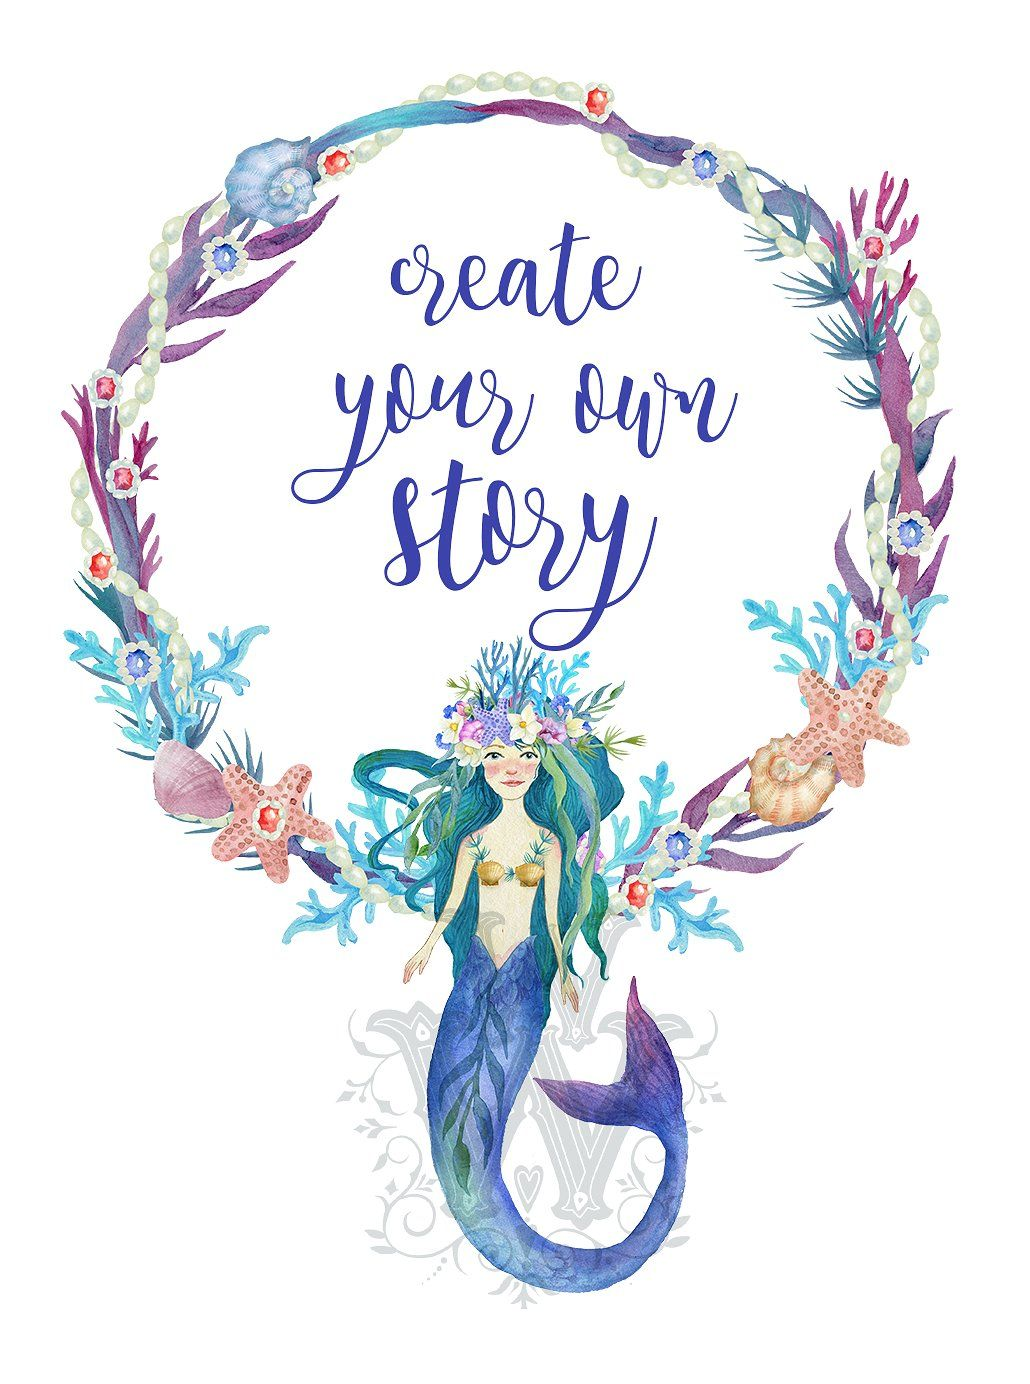 Princess Mermaid clipart set #paper#projects#designs#wedding.